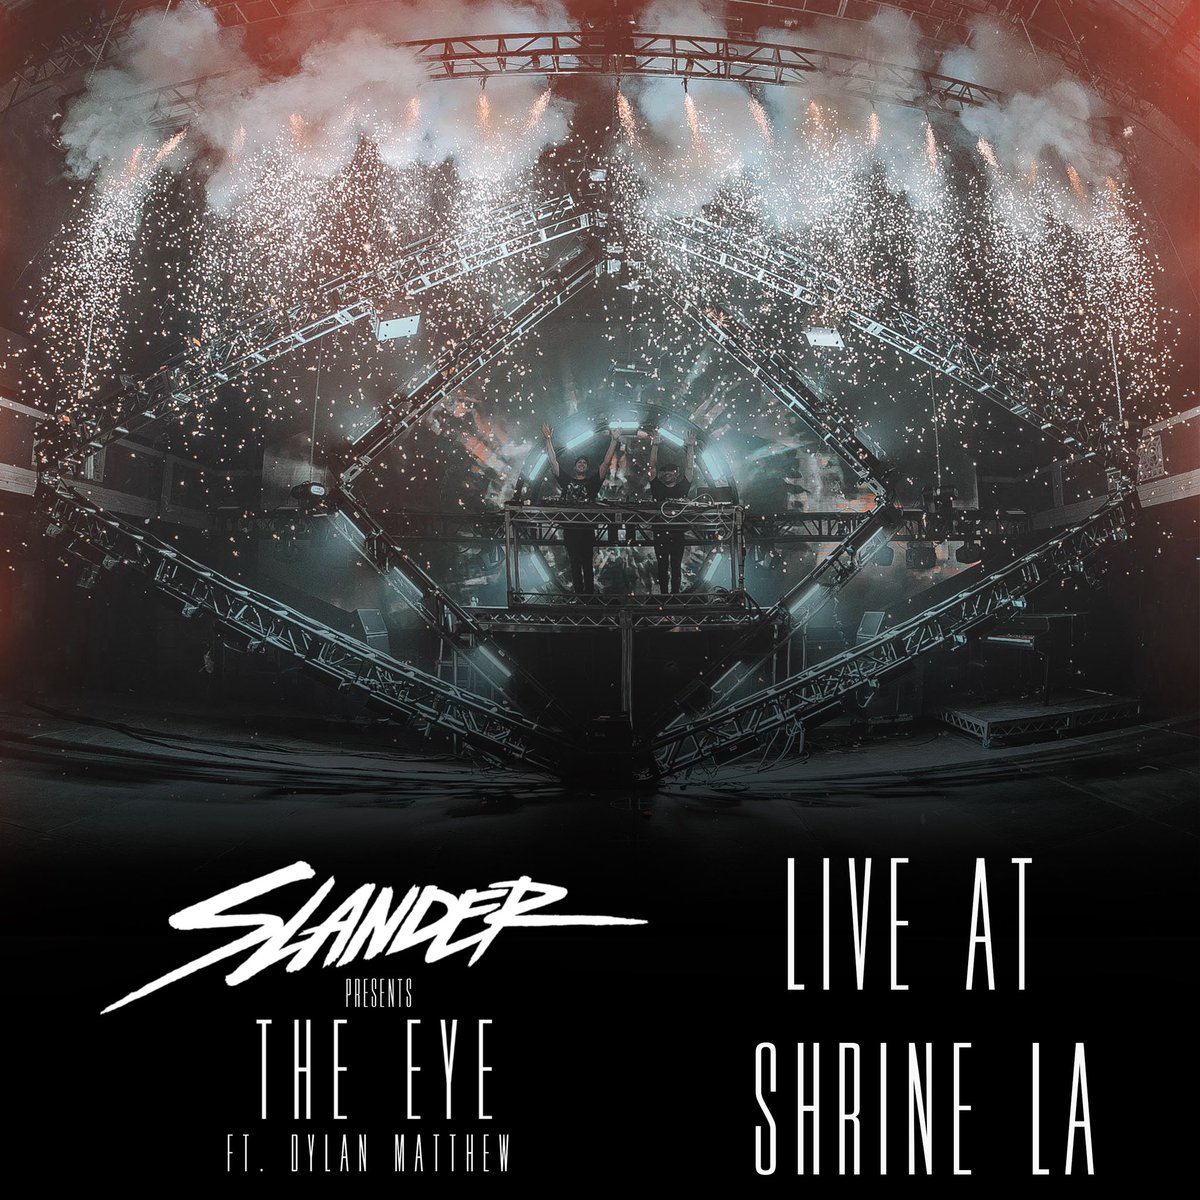 SLANDER PRESENTS THE EYE  LIVE AT SHRINE LA ile ilgili görsel sonucu